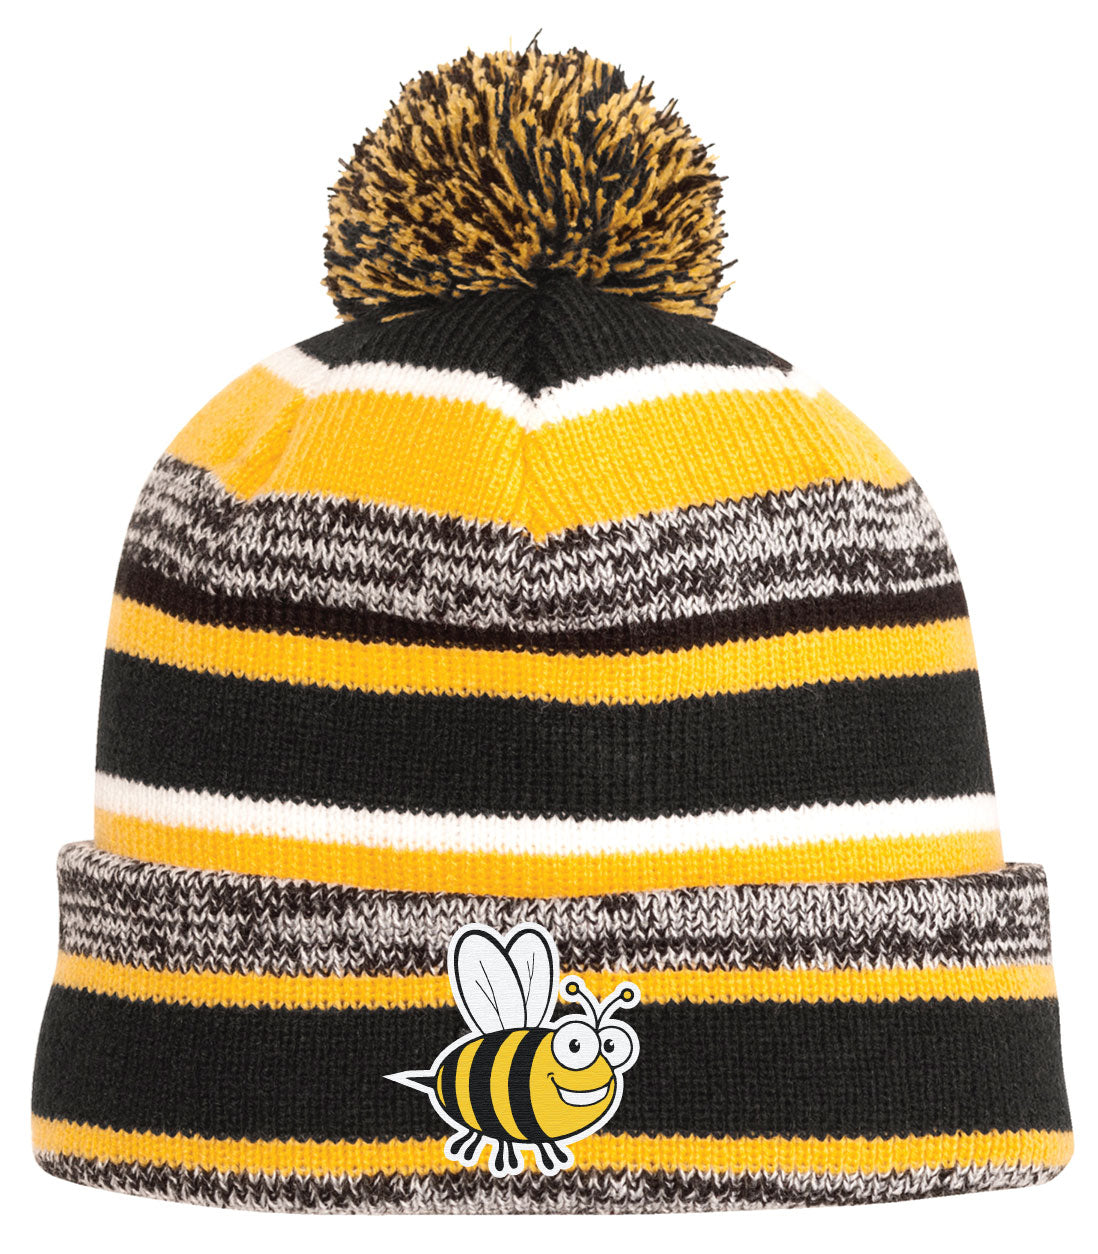 Stillson Stingers Winter Beanie w/Lining